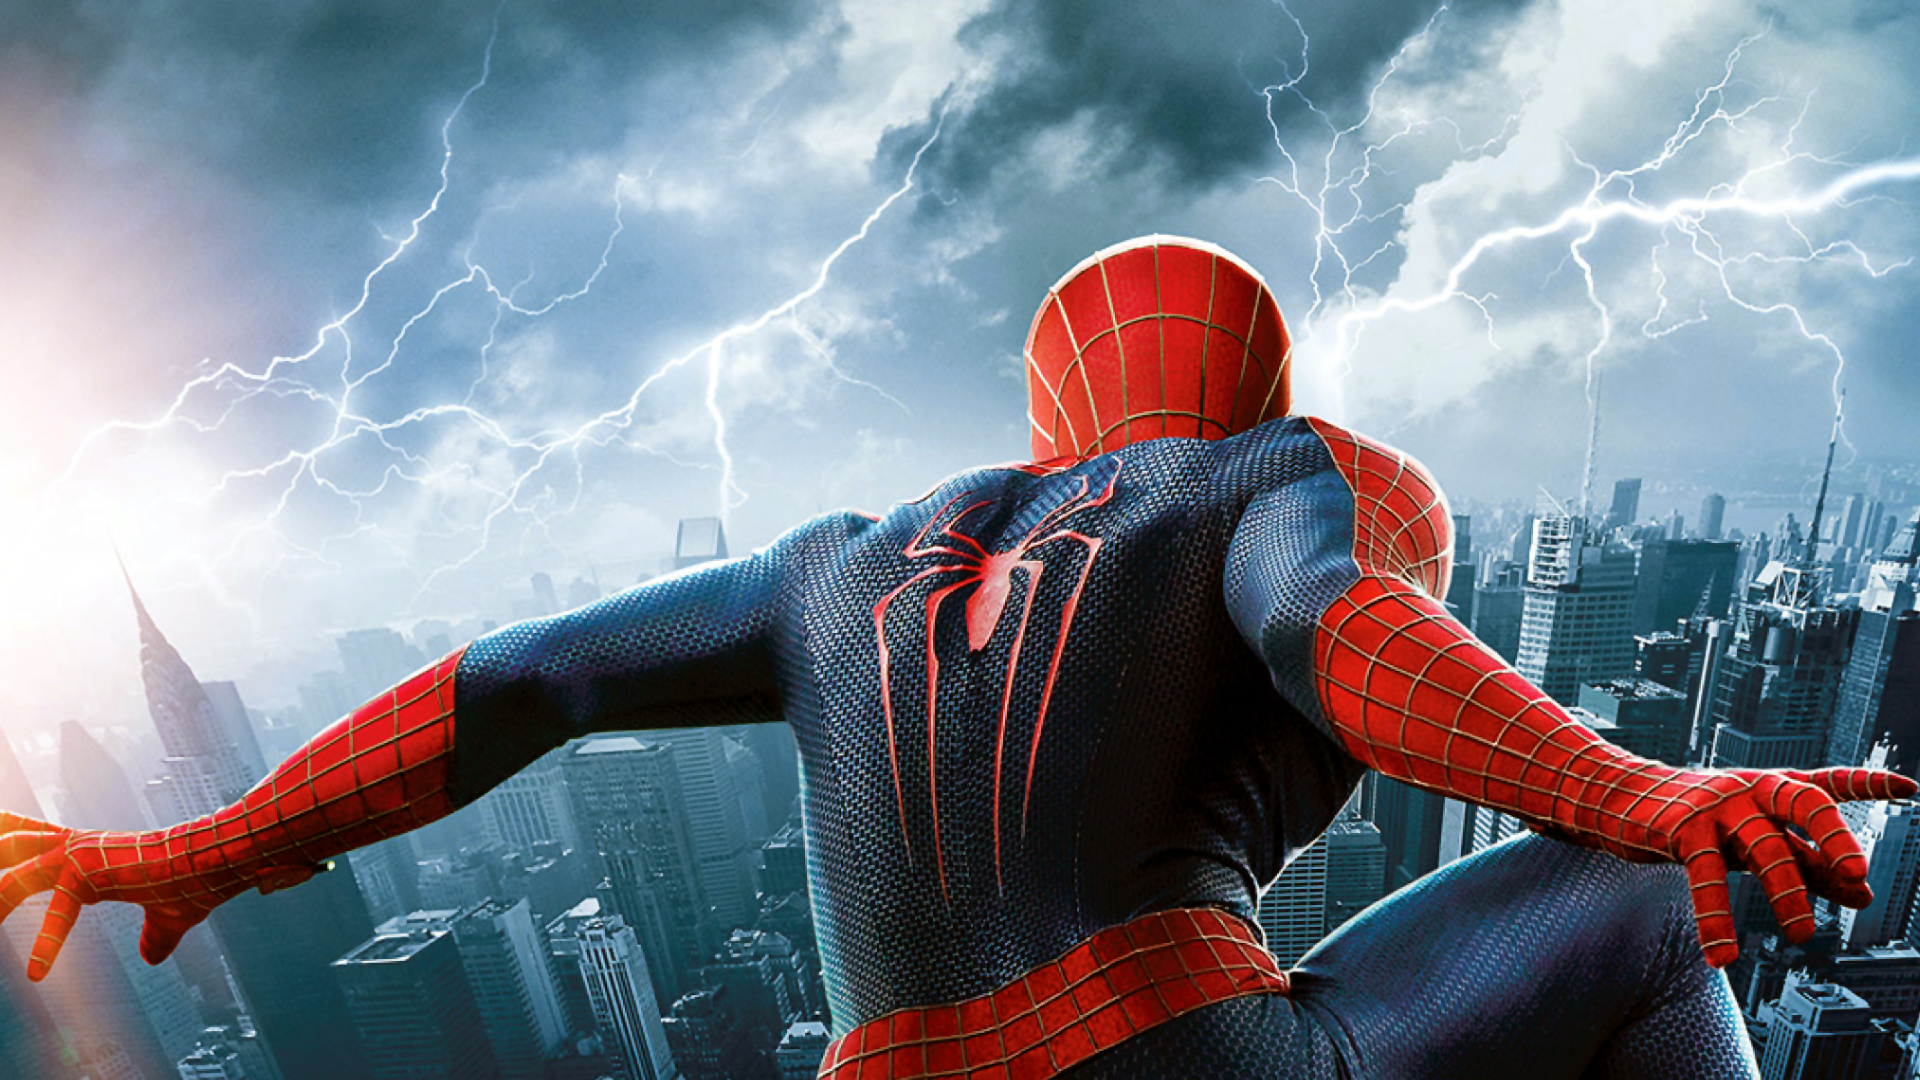 THE AMAZING SPIDERMAN Spiderman Superhero Q Wallpapers HD - Awesome video baby spiderman dancing